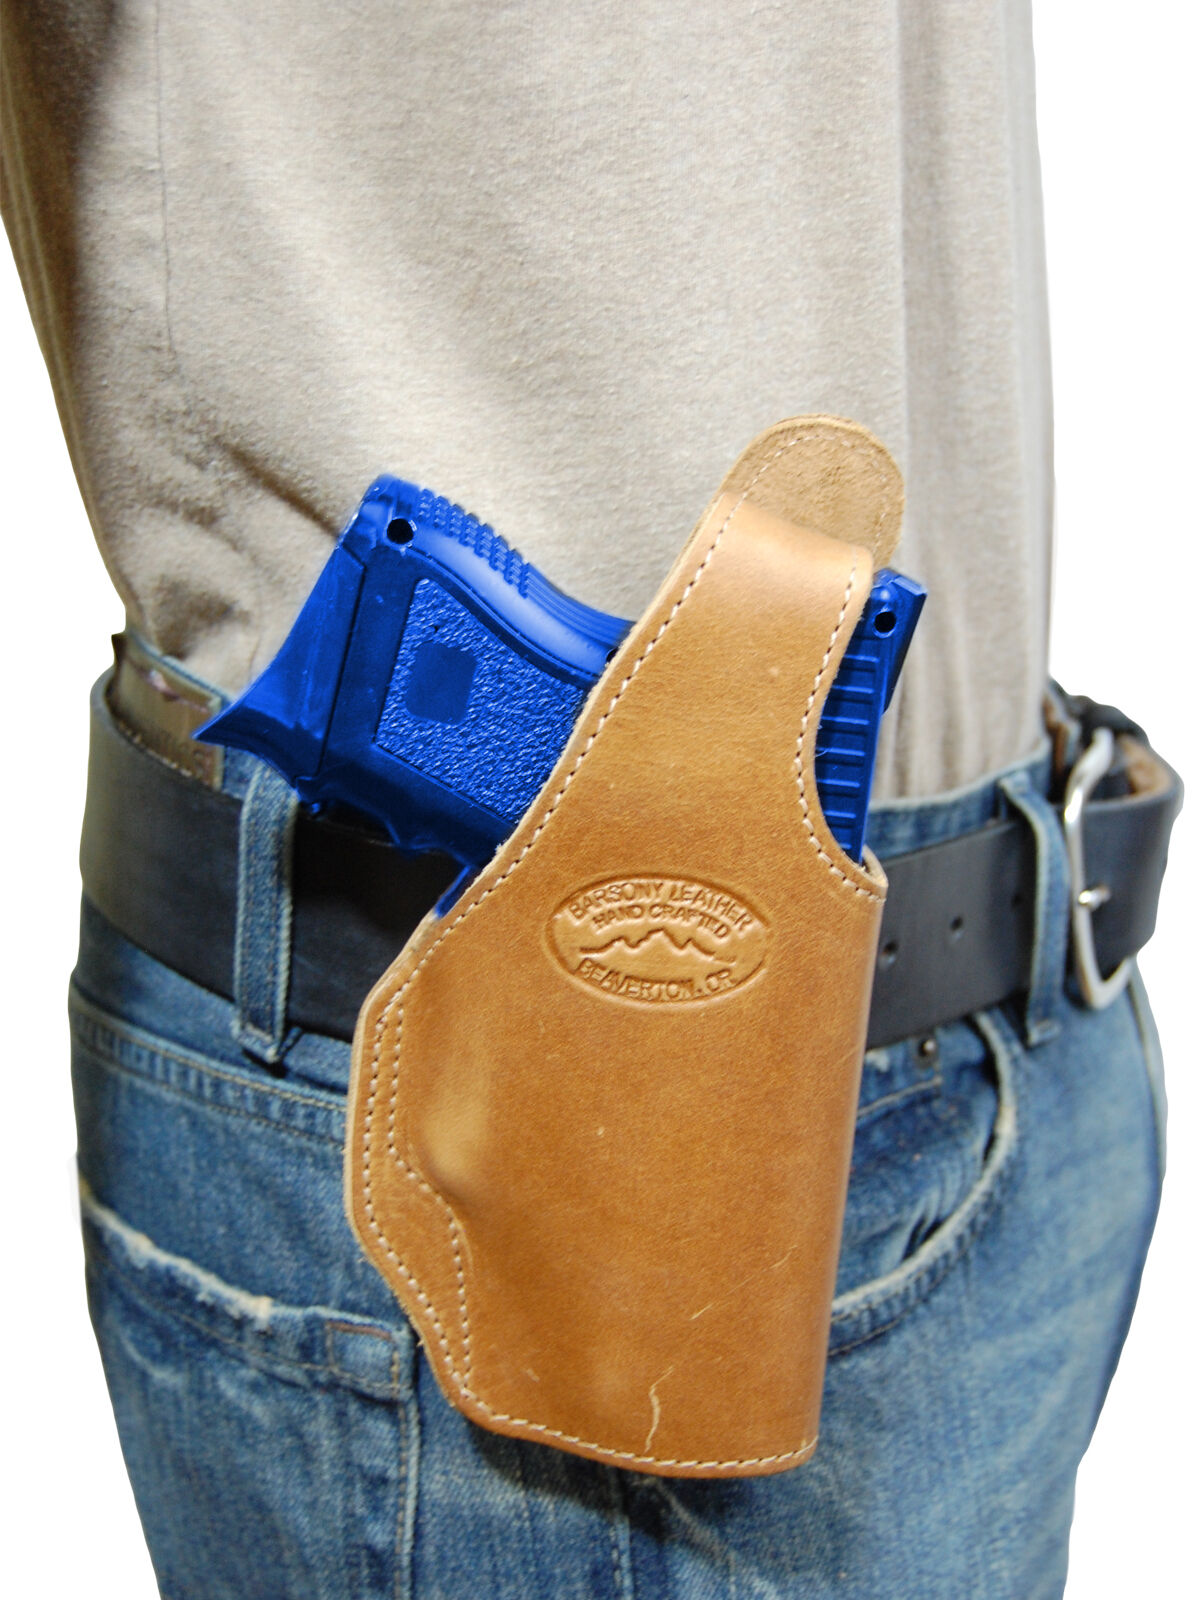 New Barsony Tan Leder OWB Holster for Walther Compact, Sub-Compact 9mm 40 45